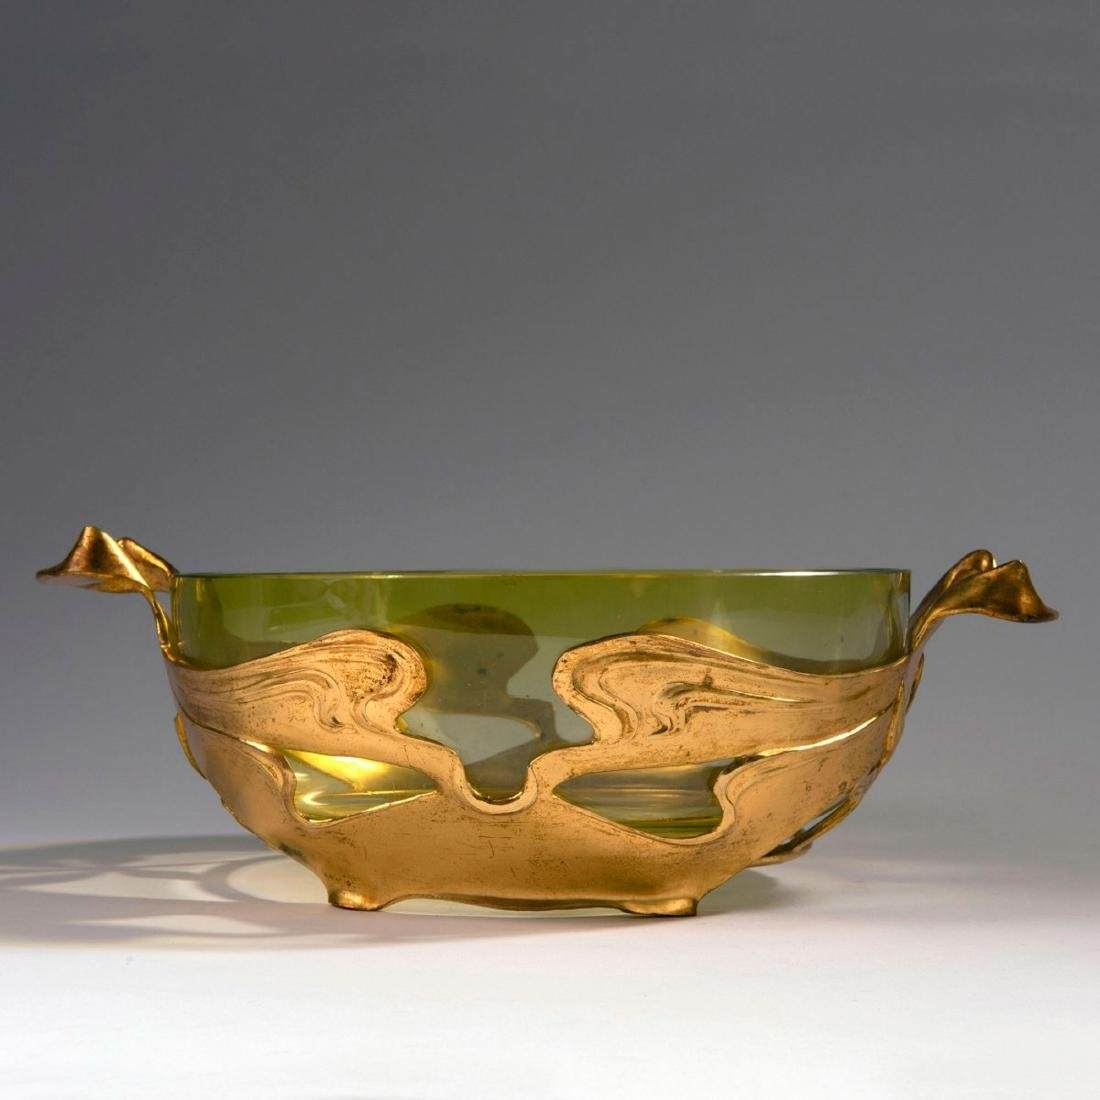 'Chestnut' bowl with two handles, c. 1900 - 2